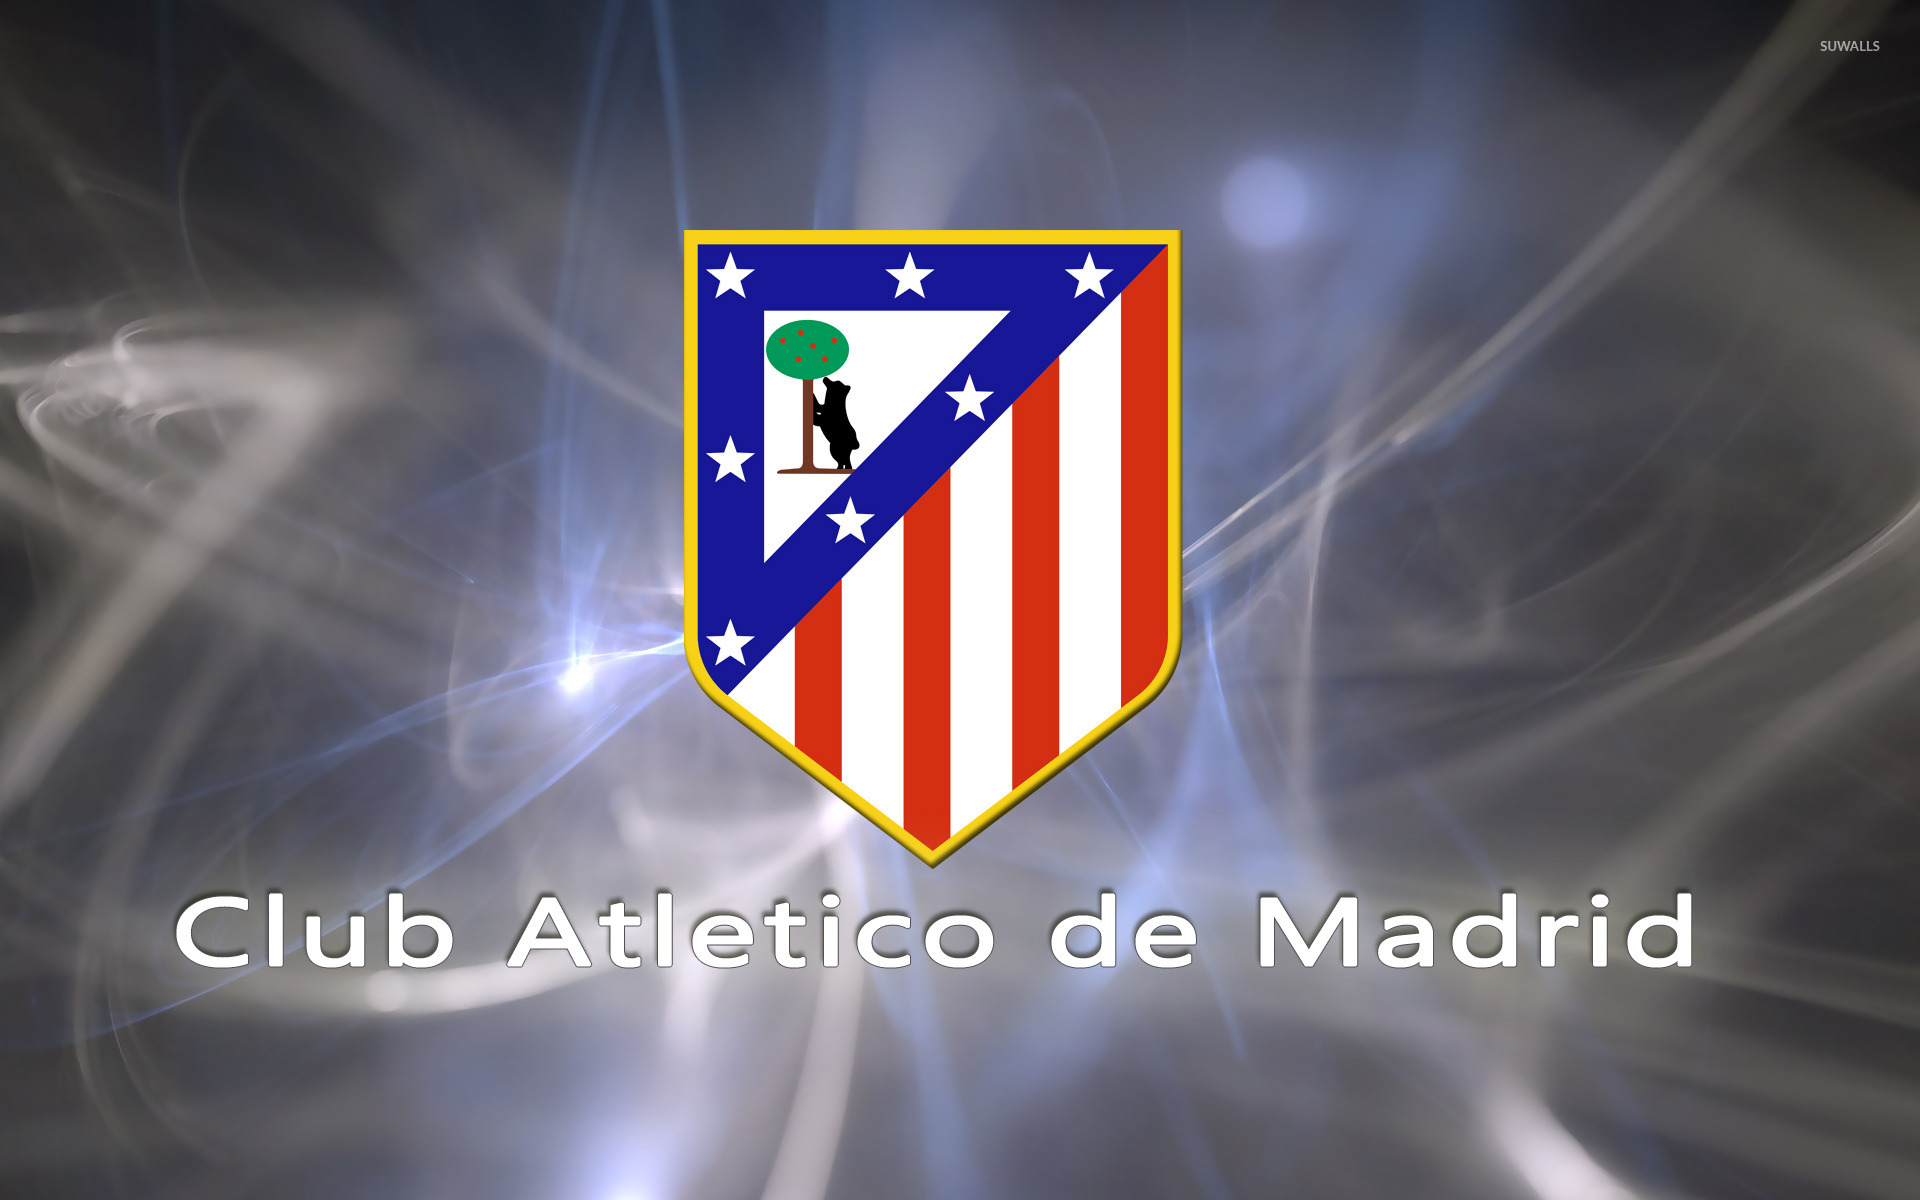 Atletico madrid wallpaper sport wallpapers 12618 atletico madrid wallpaper voltagebd Choice Image